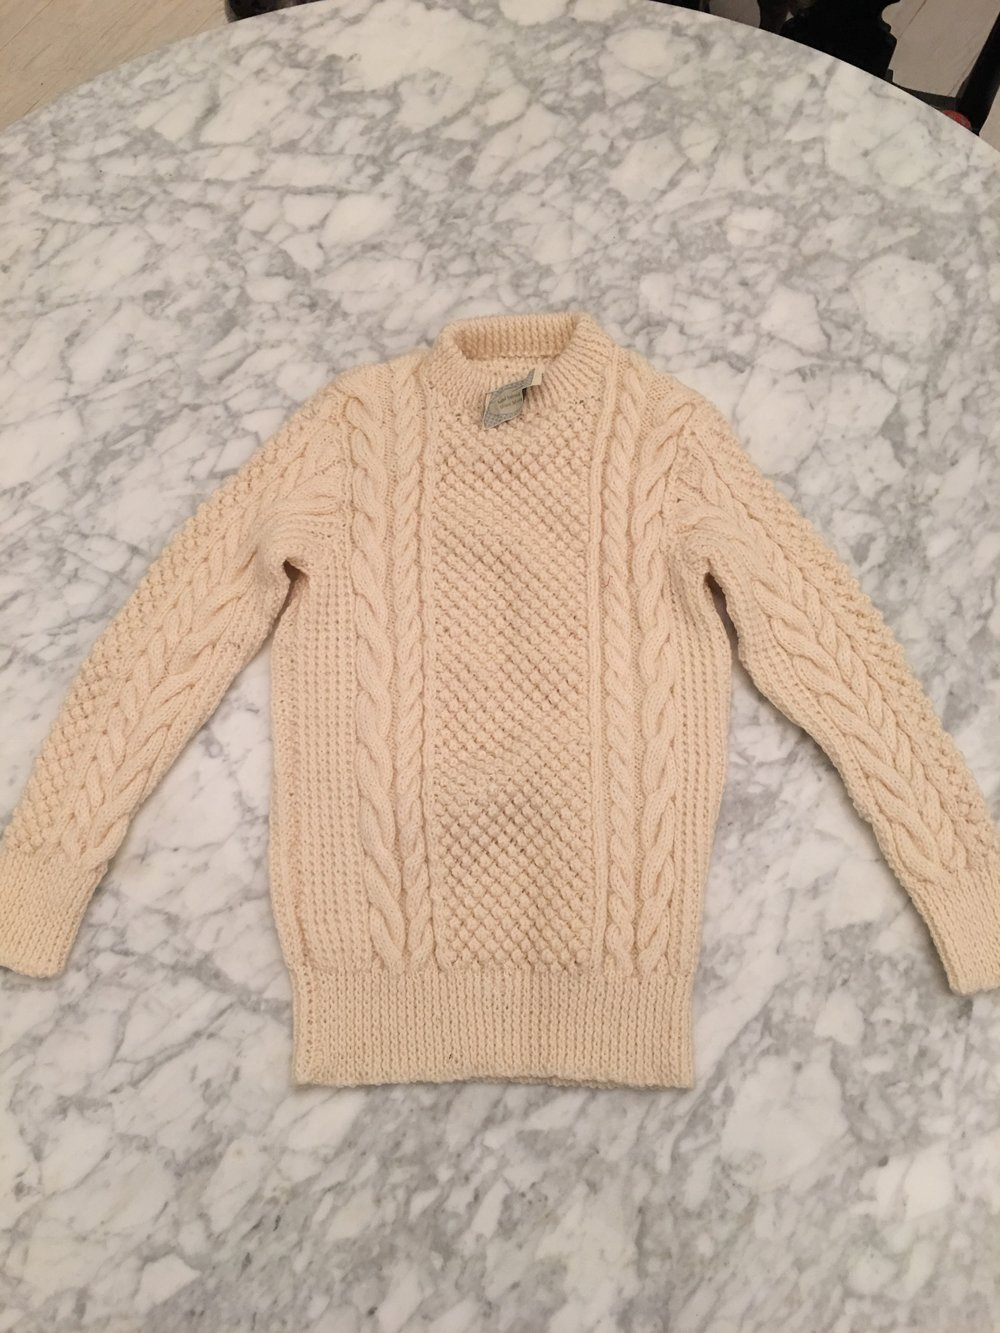 RAFFLE: Knitted ARAN SWEATER from Ian's Mother-in-Law As ever support froom my Mother & Eli's grandmother. Wonderful sweater in small size.